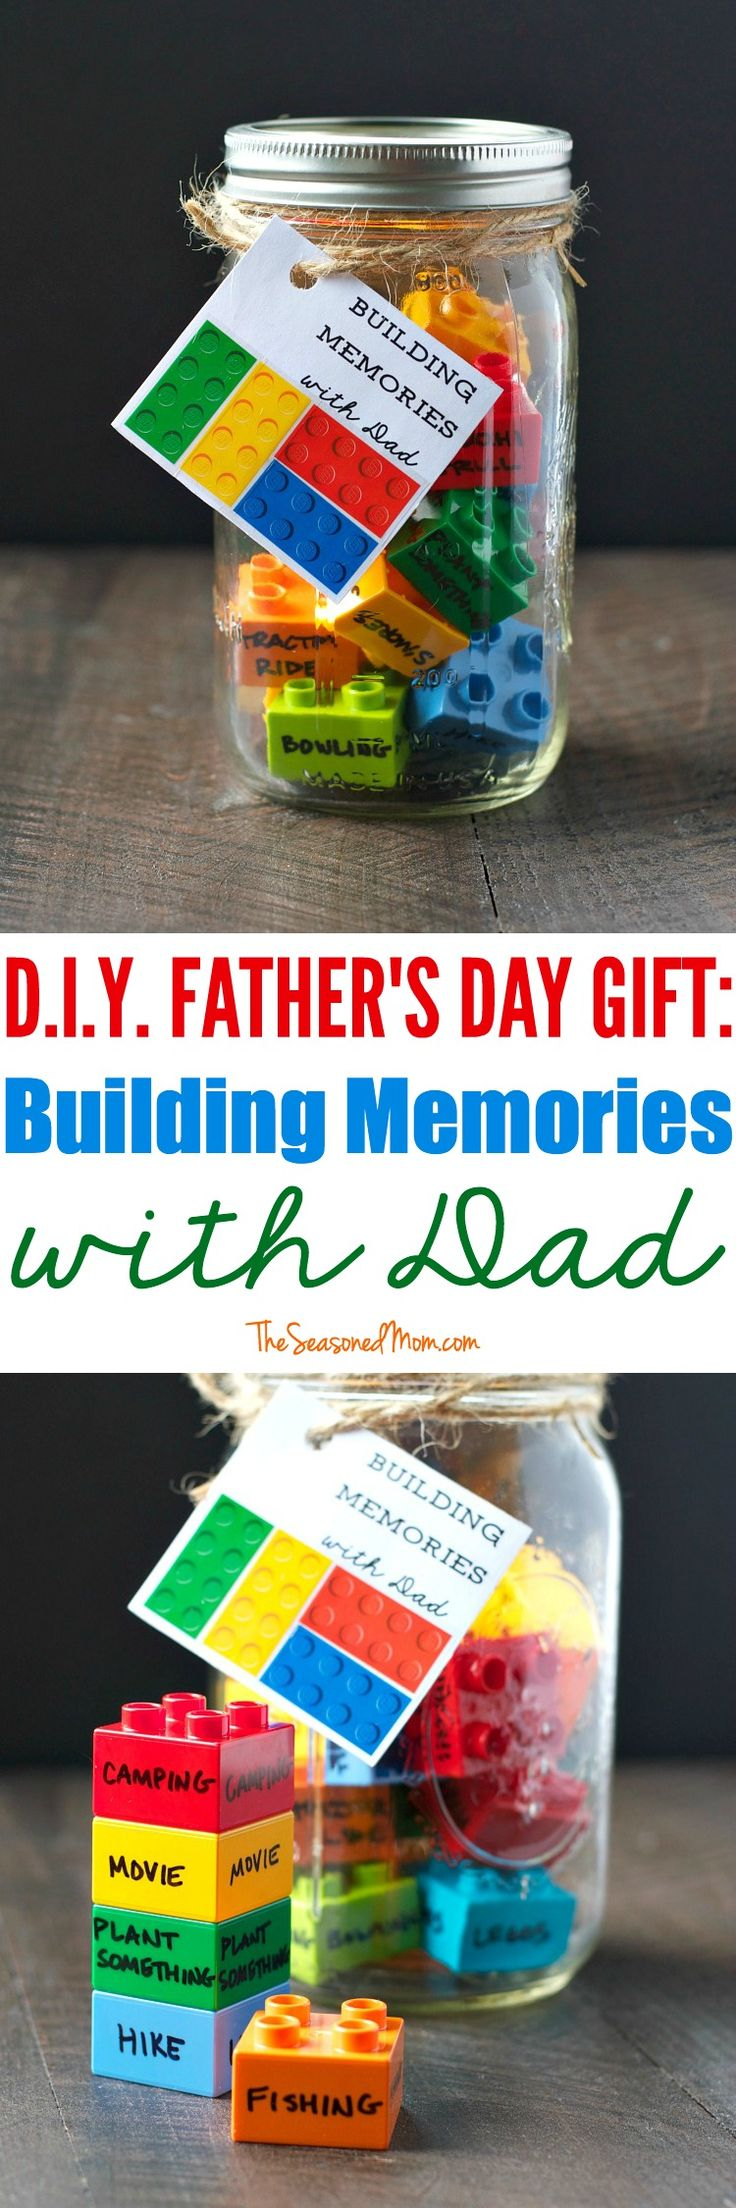 Nothing beats a homemade gift from the heart! Enjoy quality time together and create an easy DIY Father's Day Gift that will build memories to last a lifetime! @horizonorganic #ad HorizonOrganic #HorizonSnacks